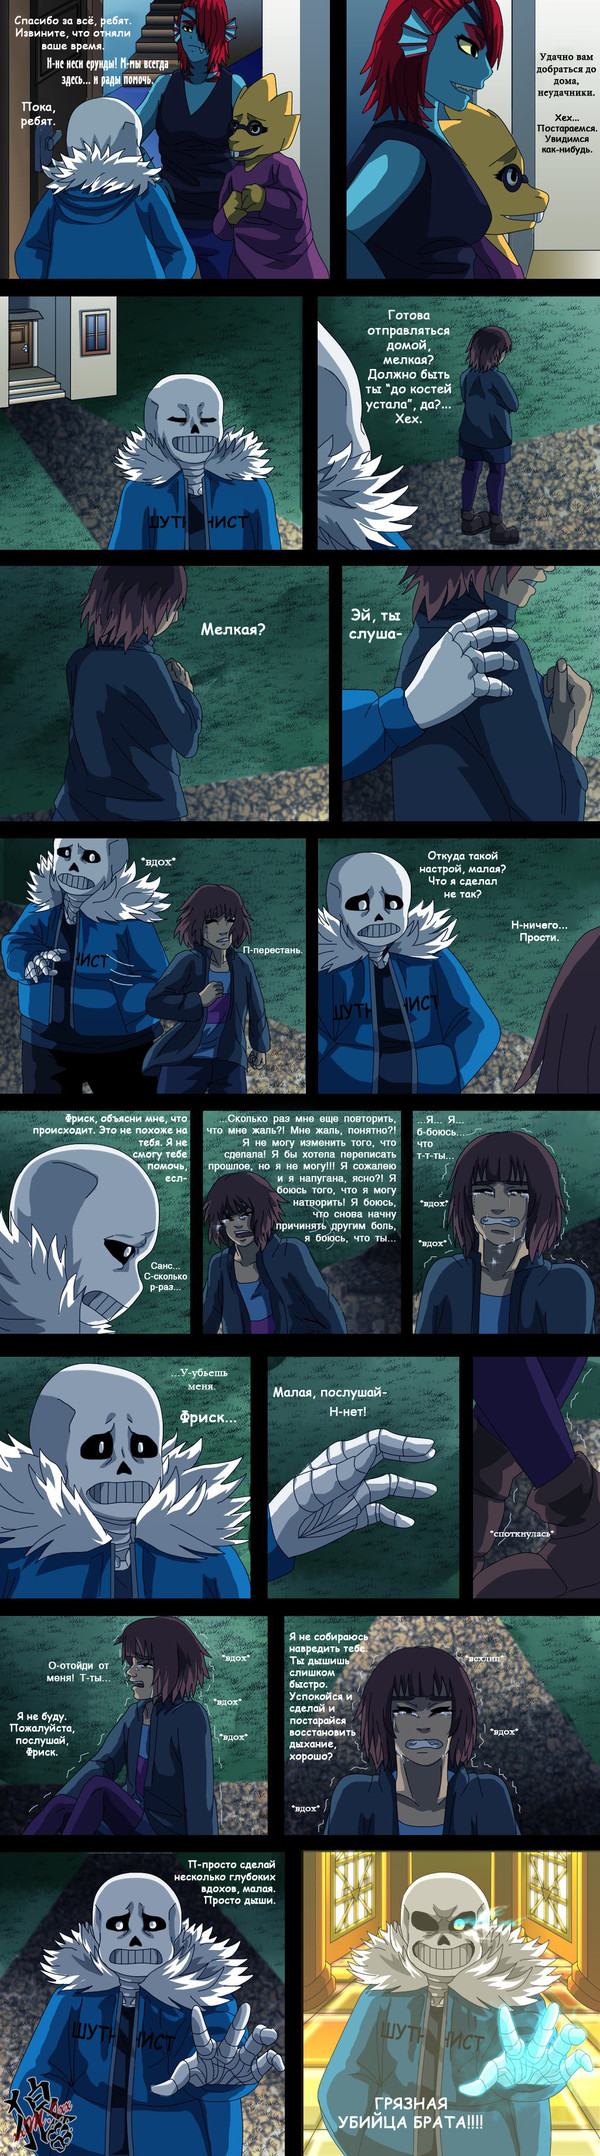 Nightmaretale - 30 Undertale, Undertale AU, Nightmaretale, Комиксы, Перевод, Длиннопост, DeviantArt